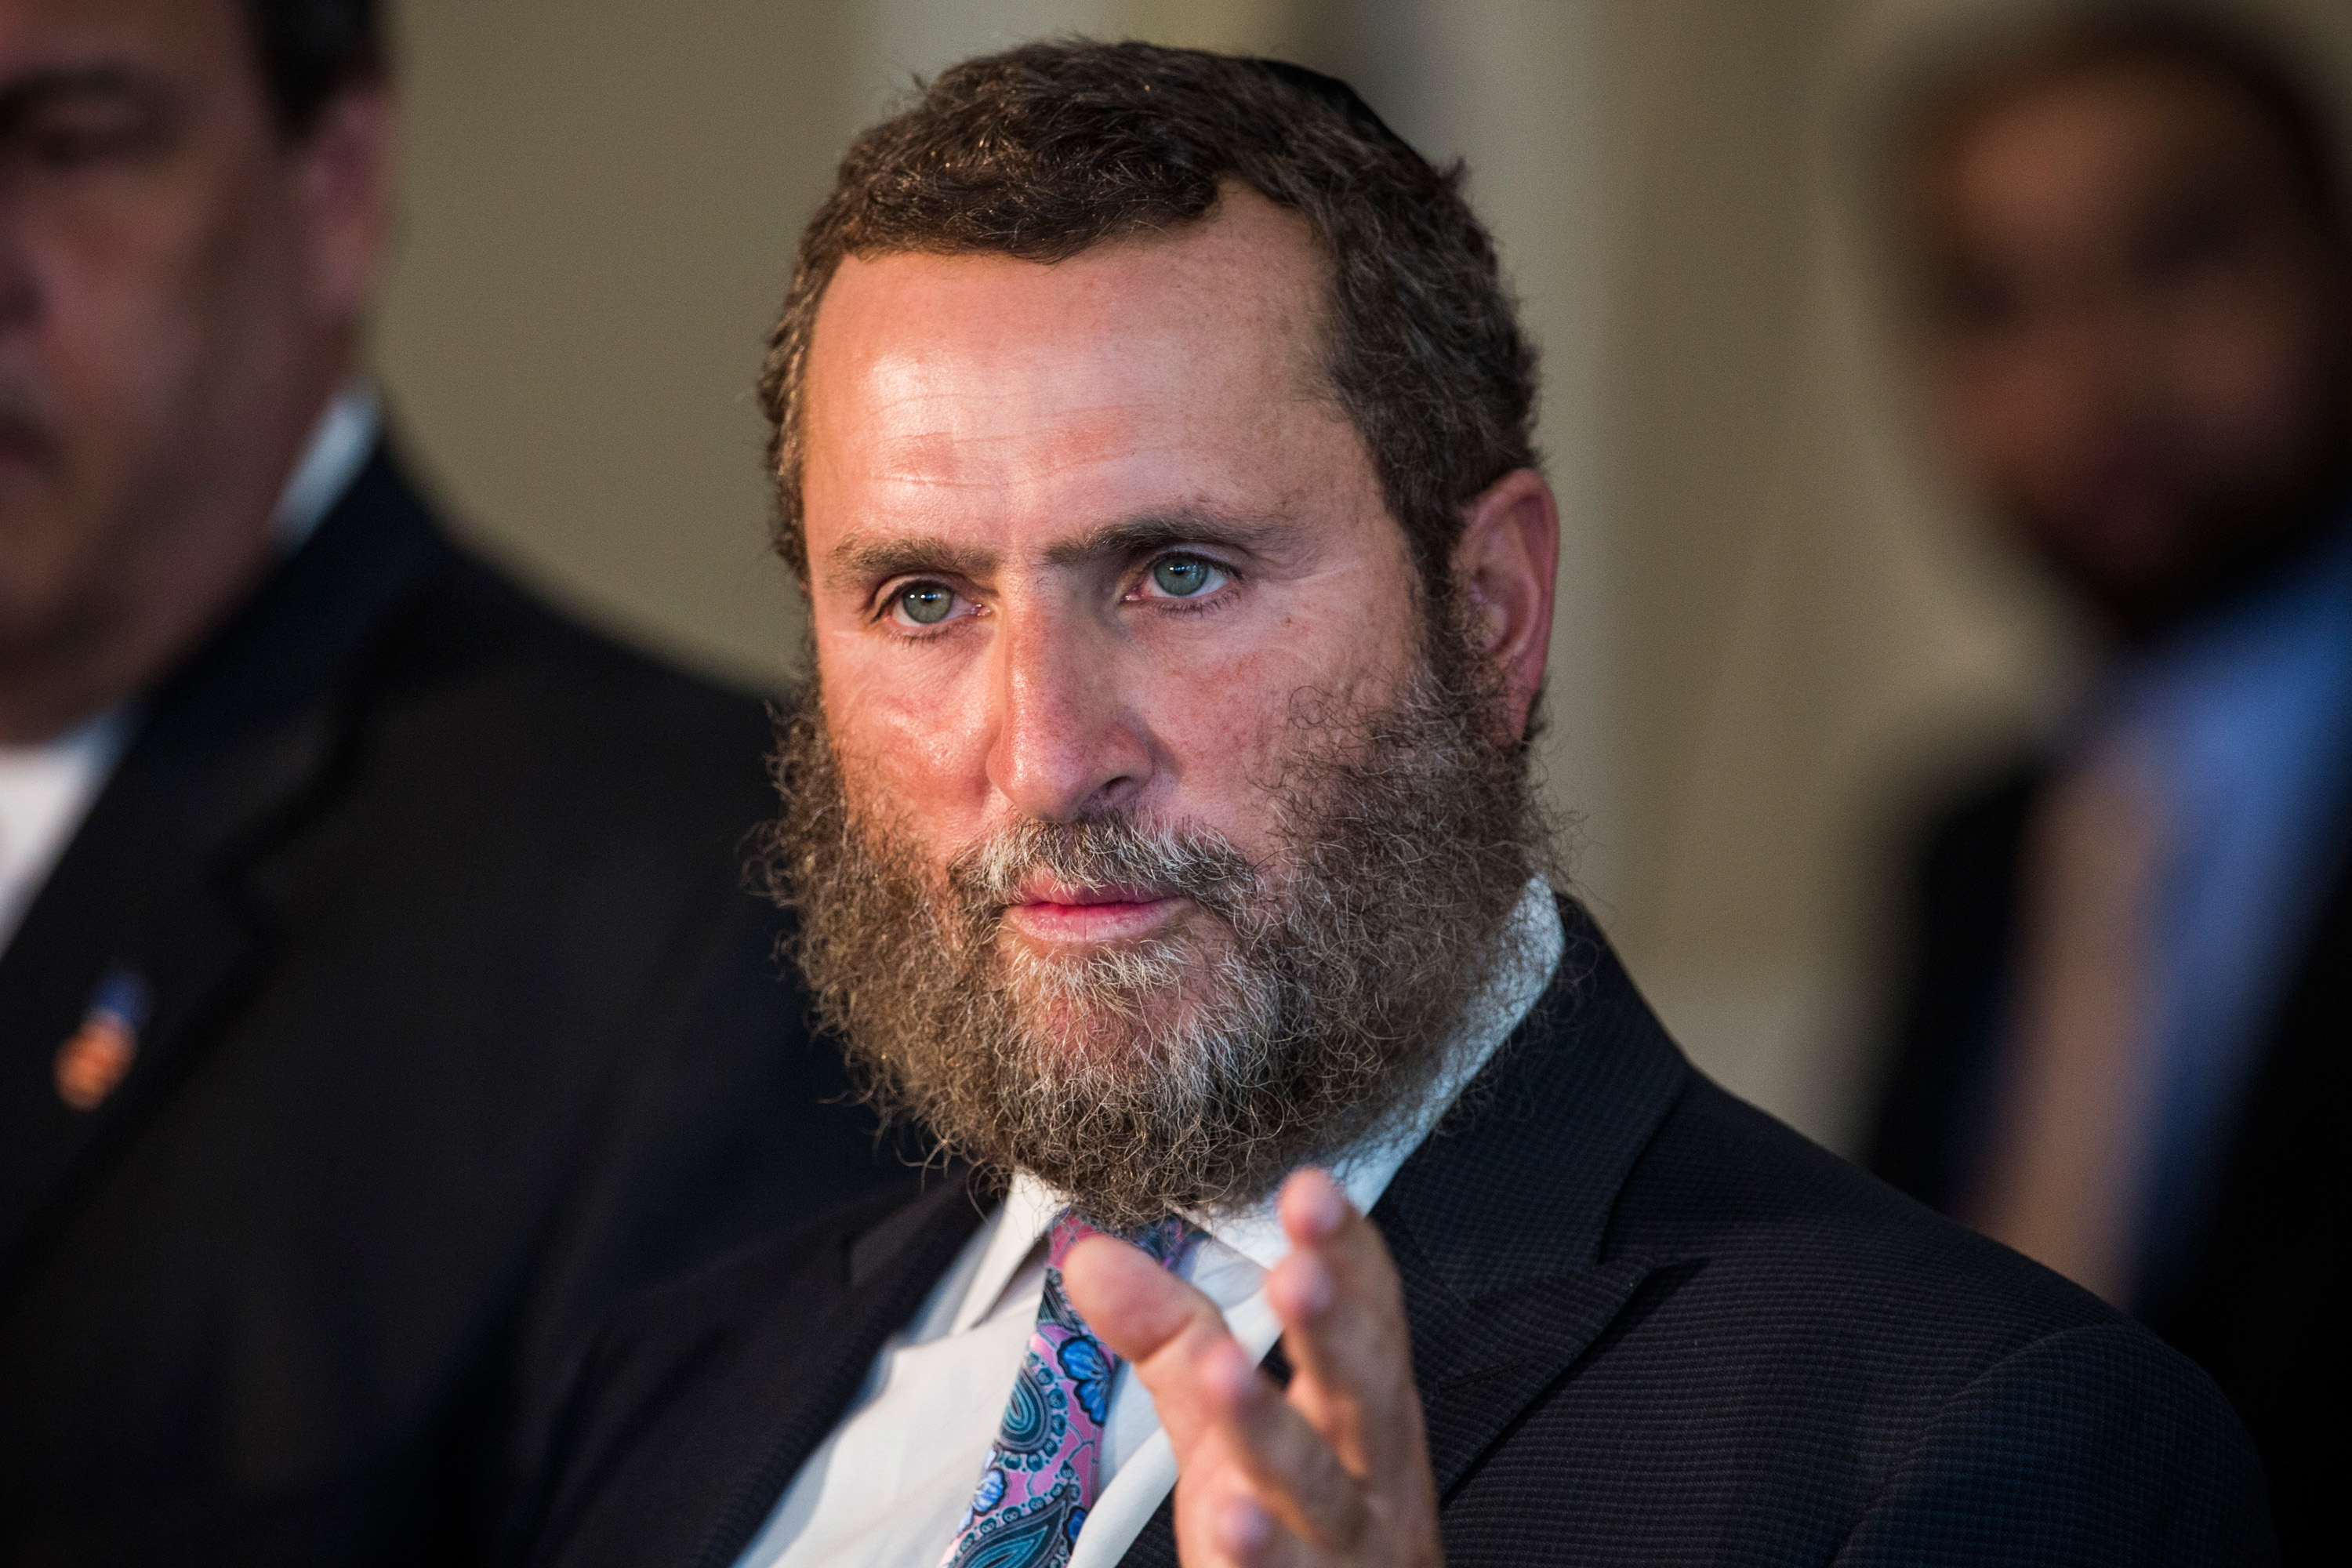 Rabbi Shmuley Boteach at Chabad House at Rutgers University in New Jersey on Aug. 25, 2015. (Andrew Burton/Getty Images)